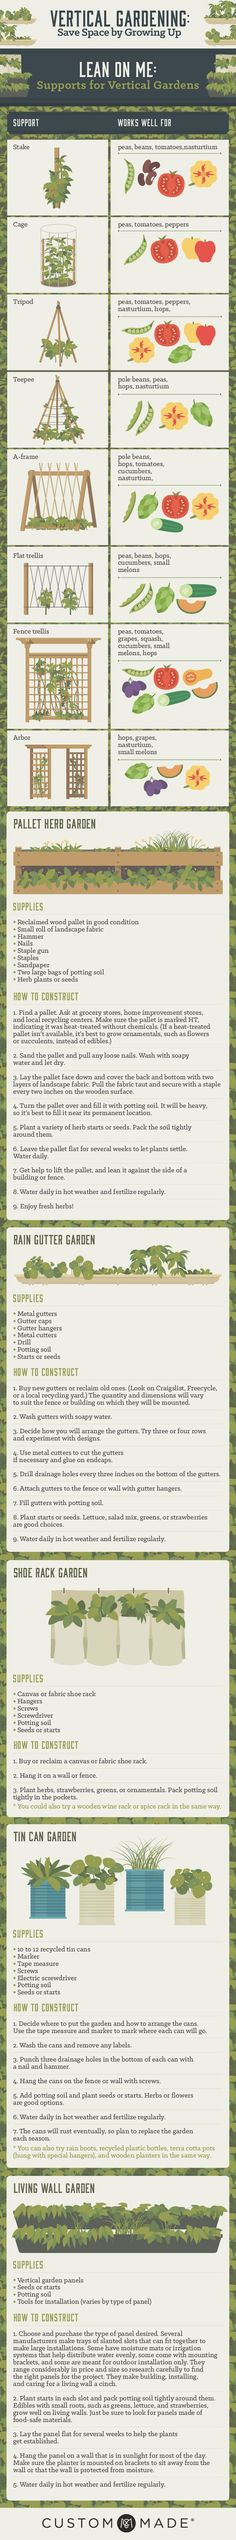 How To Urban Garden Learn how to grow a vertical garden. - Learn how to grow a vertical garden and master vertical gardening with this useful infographic. Vertical Vegetable Gardens, Veg Garden, Edible Garden, Gutter Garden, Veggie Gardens, Vertical Planting, Indoor Vegetable Gardening, Tree Planting, Potager Garden